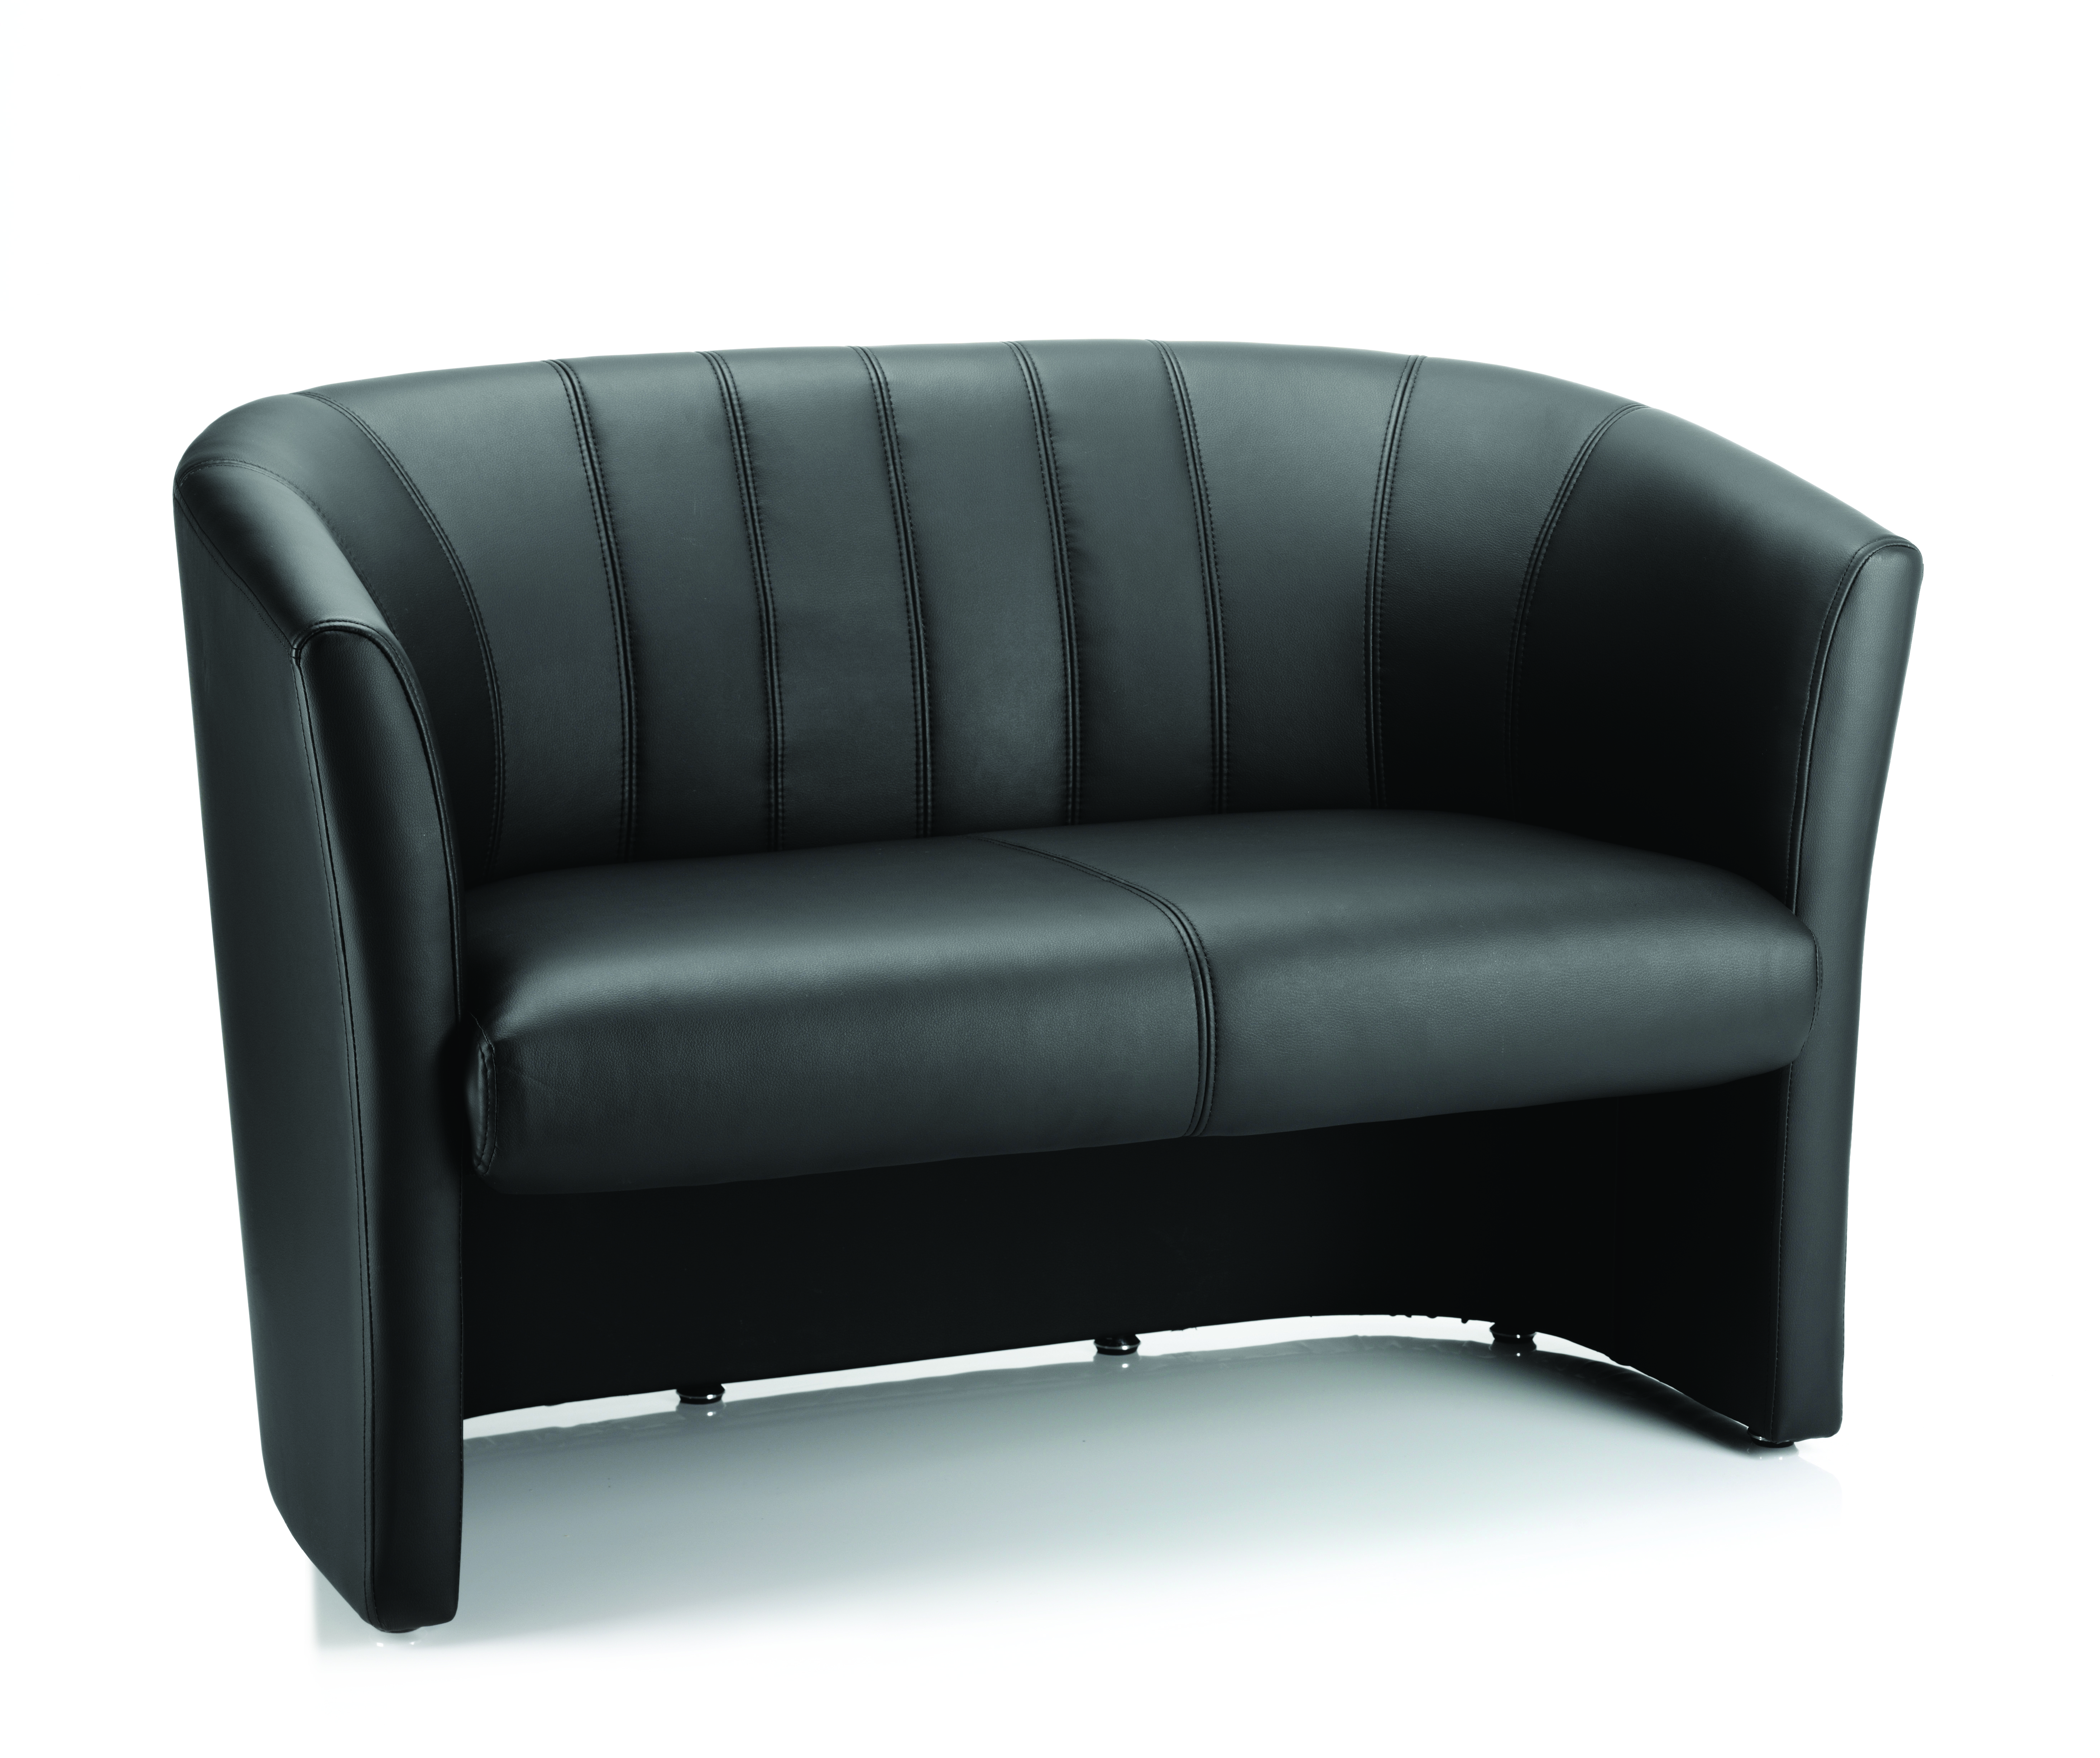 Reception Chairs Neo Twin Tub Black Leather BR000105